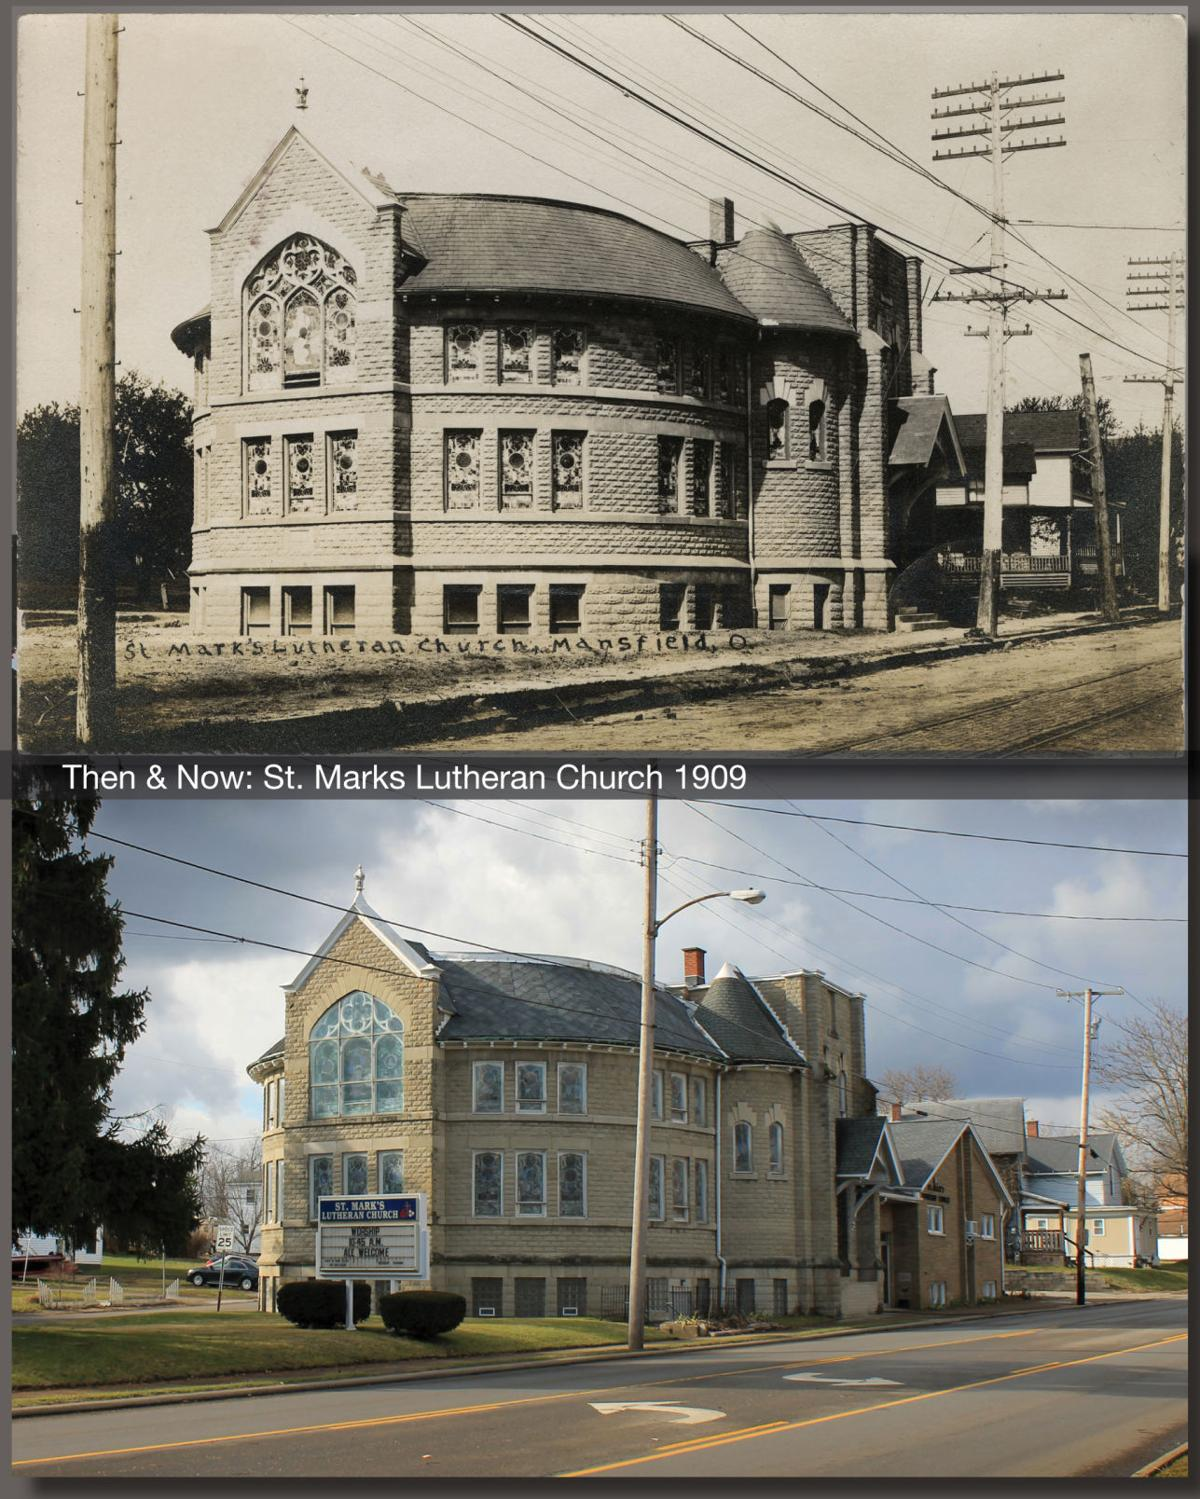 Then & Now: St. Mark's Lutheran Church in 1909